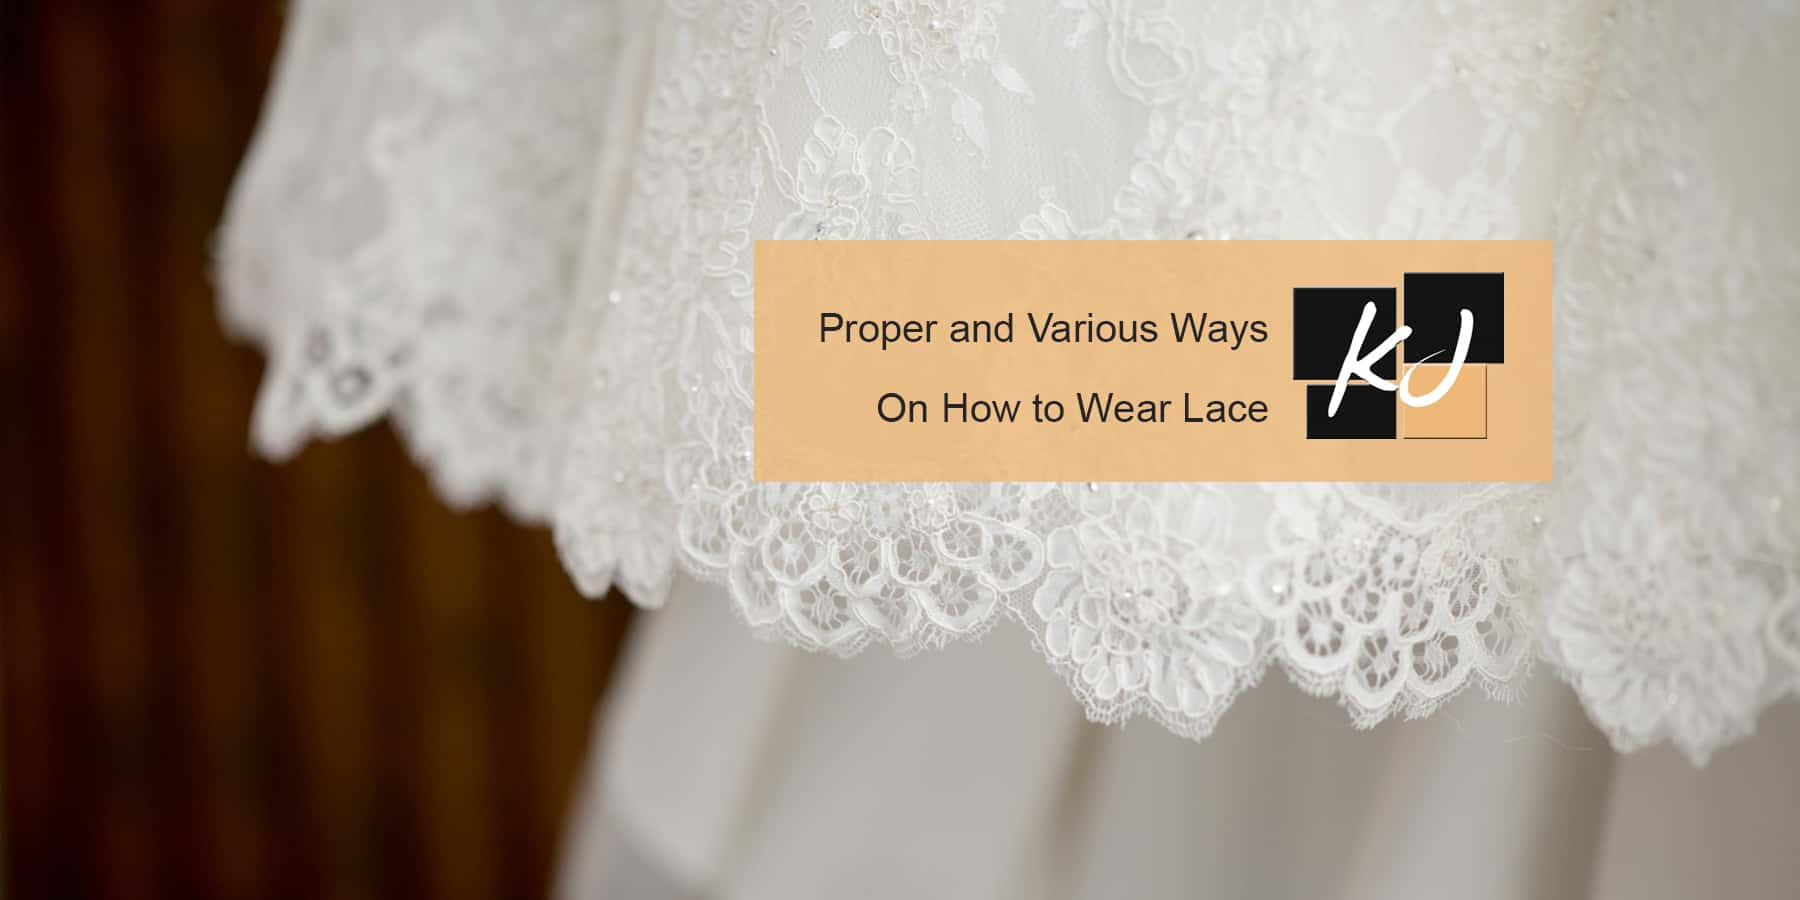 Proper and Various Ways on How to Wear Lace